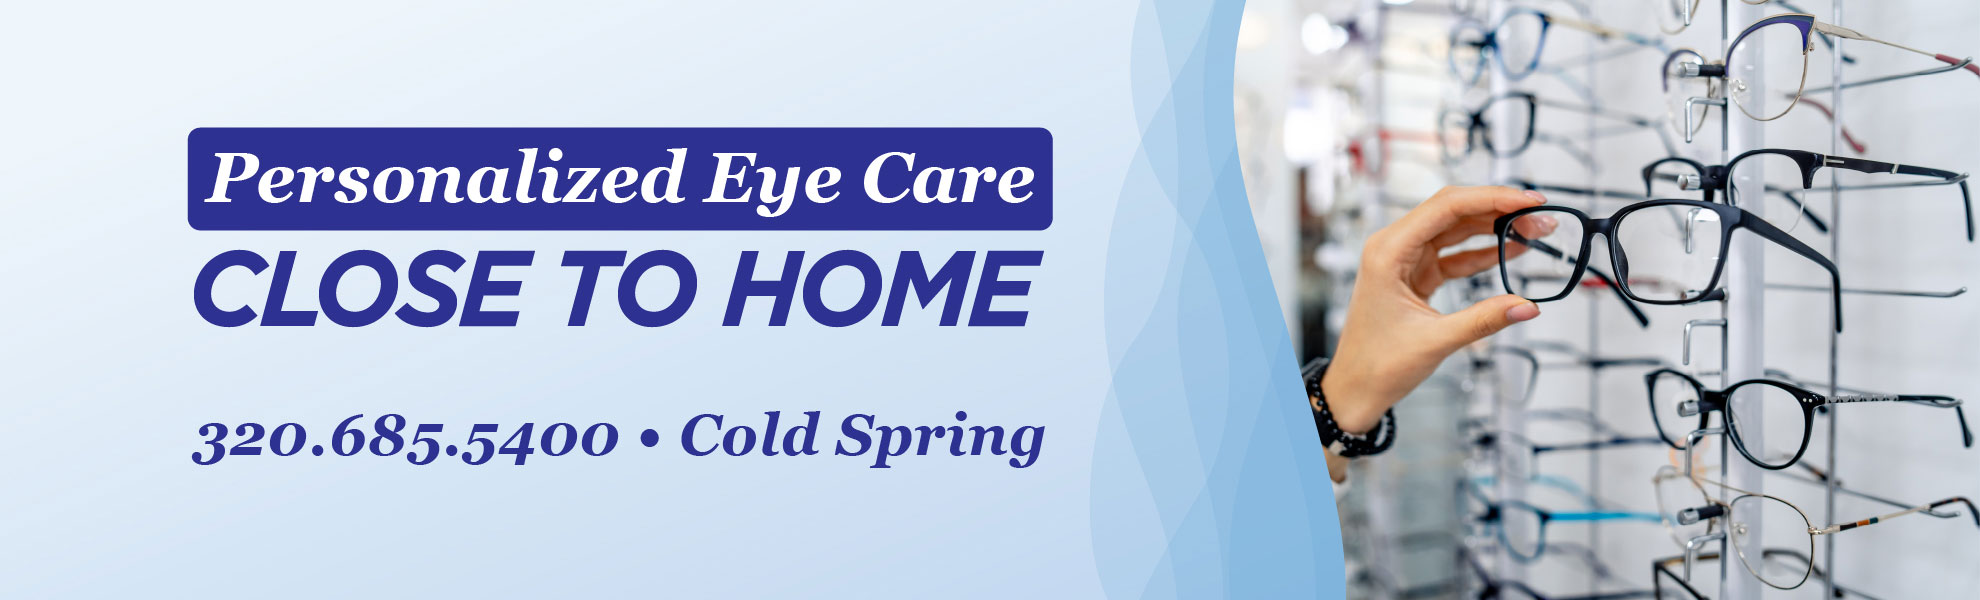 Personalized Eye Care. Close to home. 320.685.5400 - Cold Spring